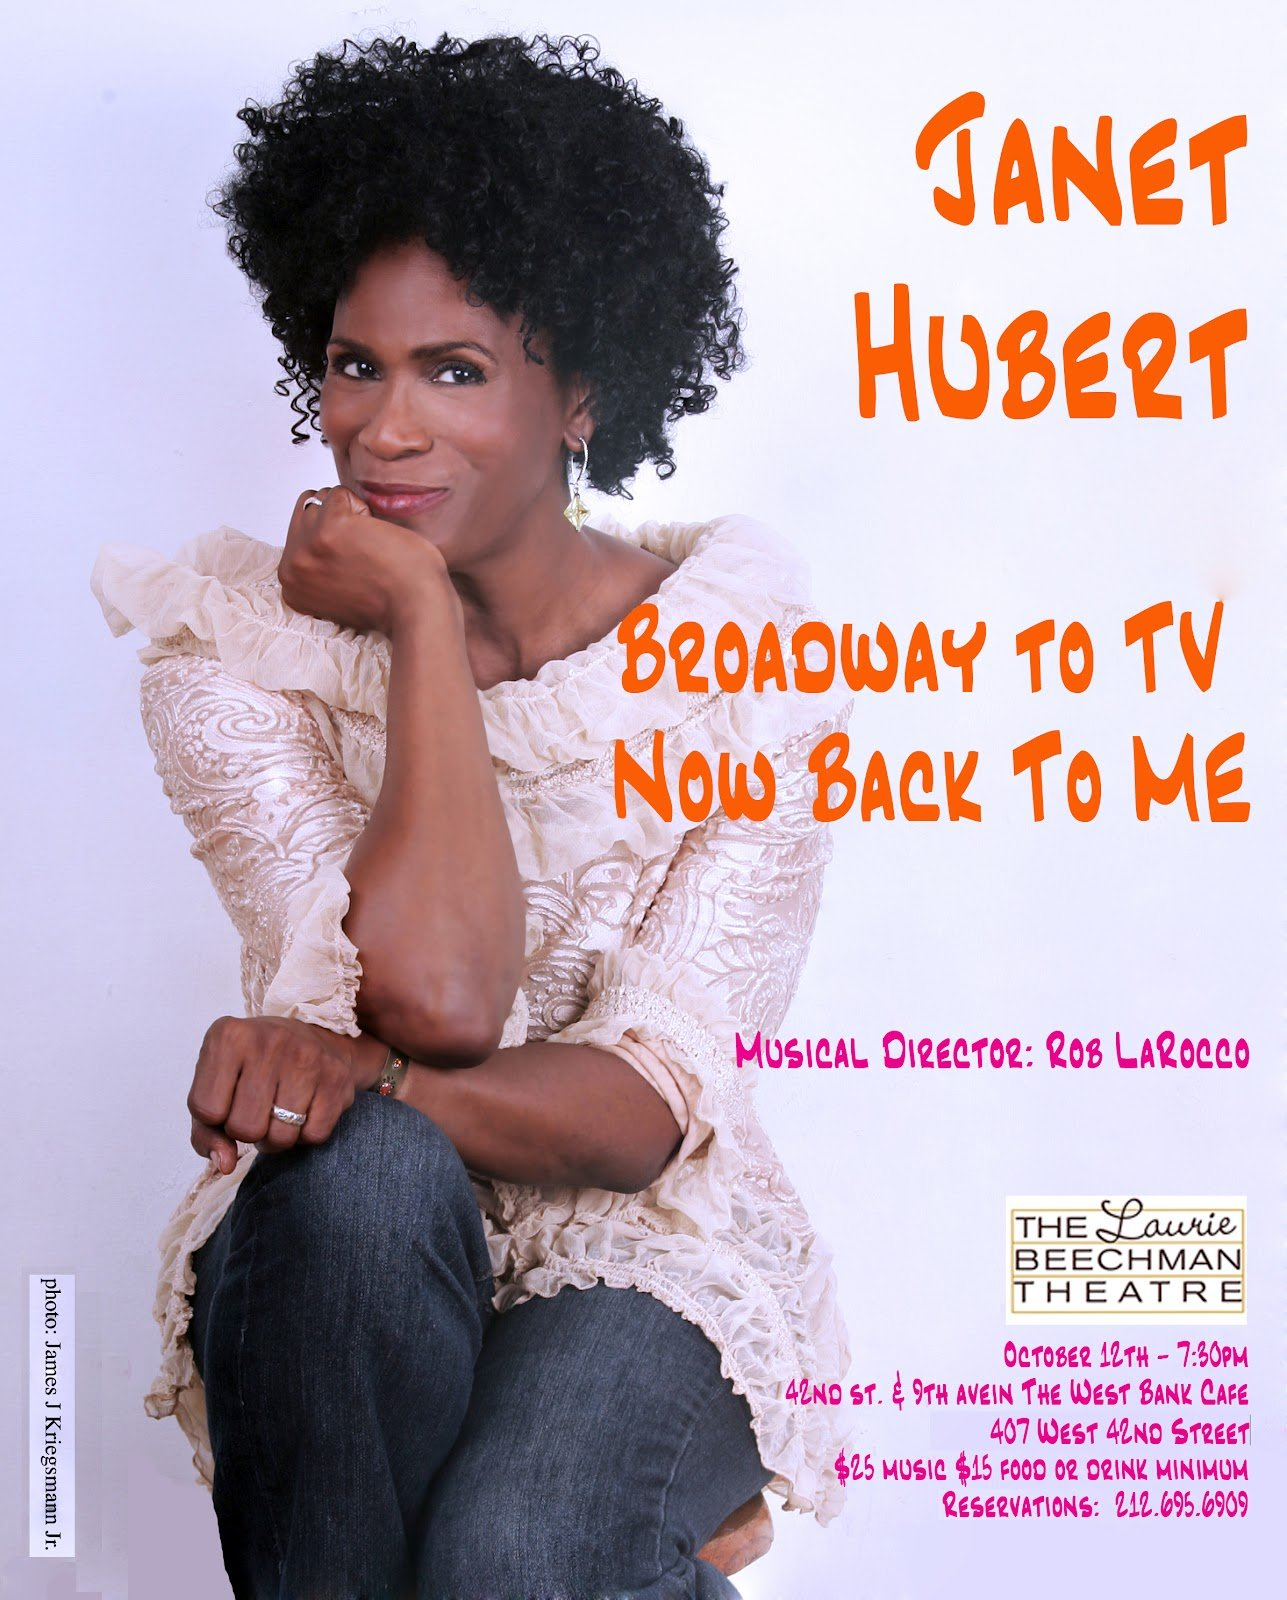 Broadway to TV, Now Back to Me!